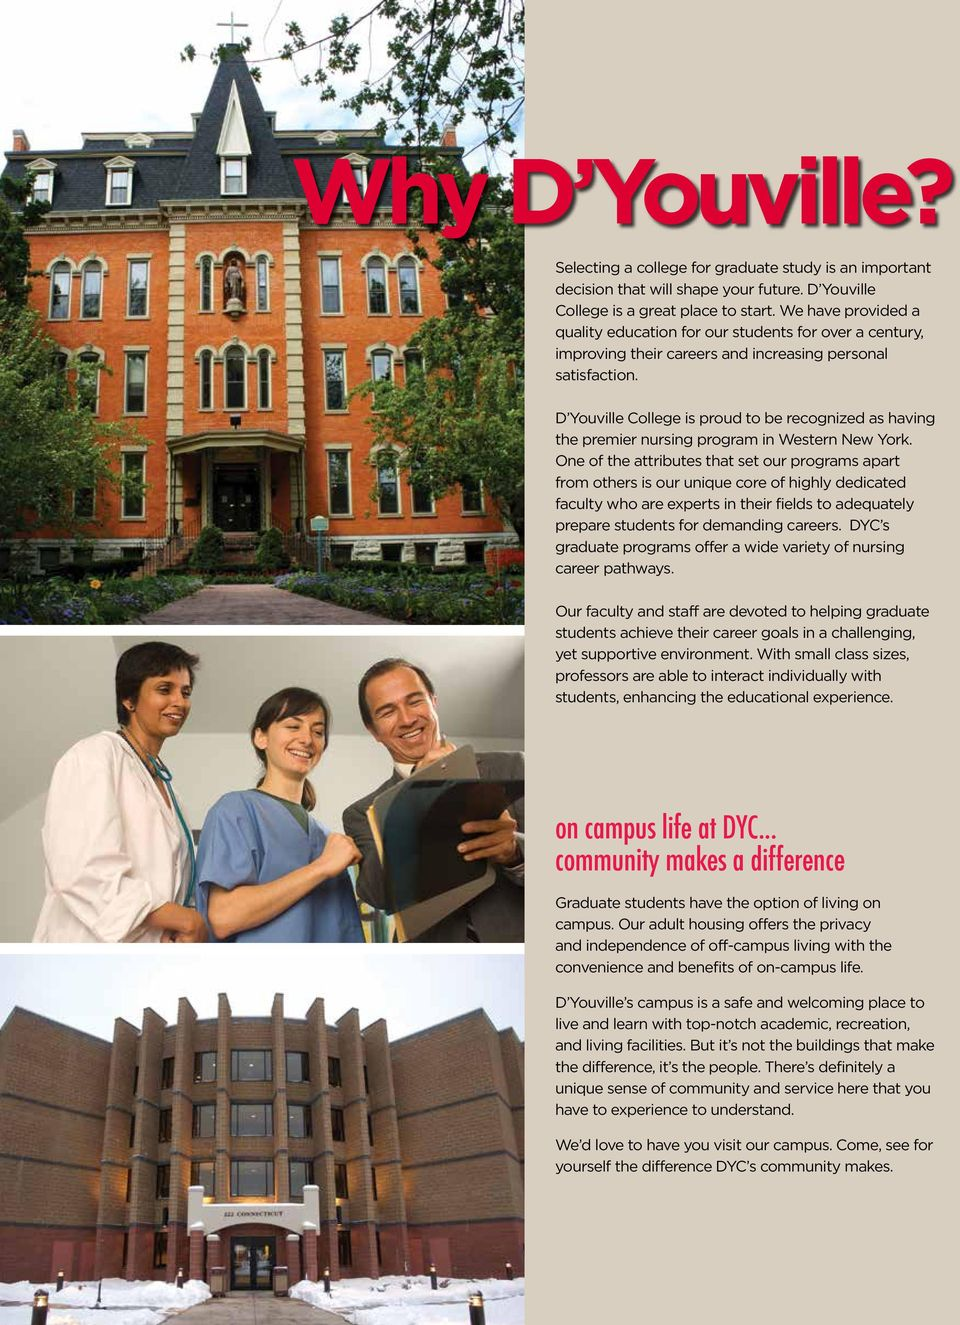 D Youville College is proud to be recognized as having the premier nursing program in Western New York.